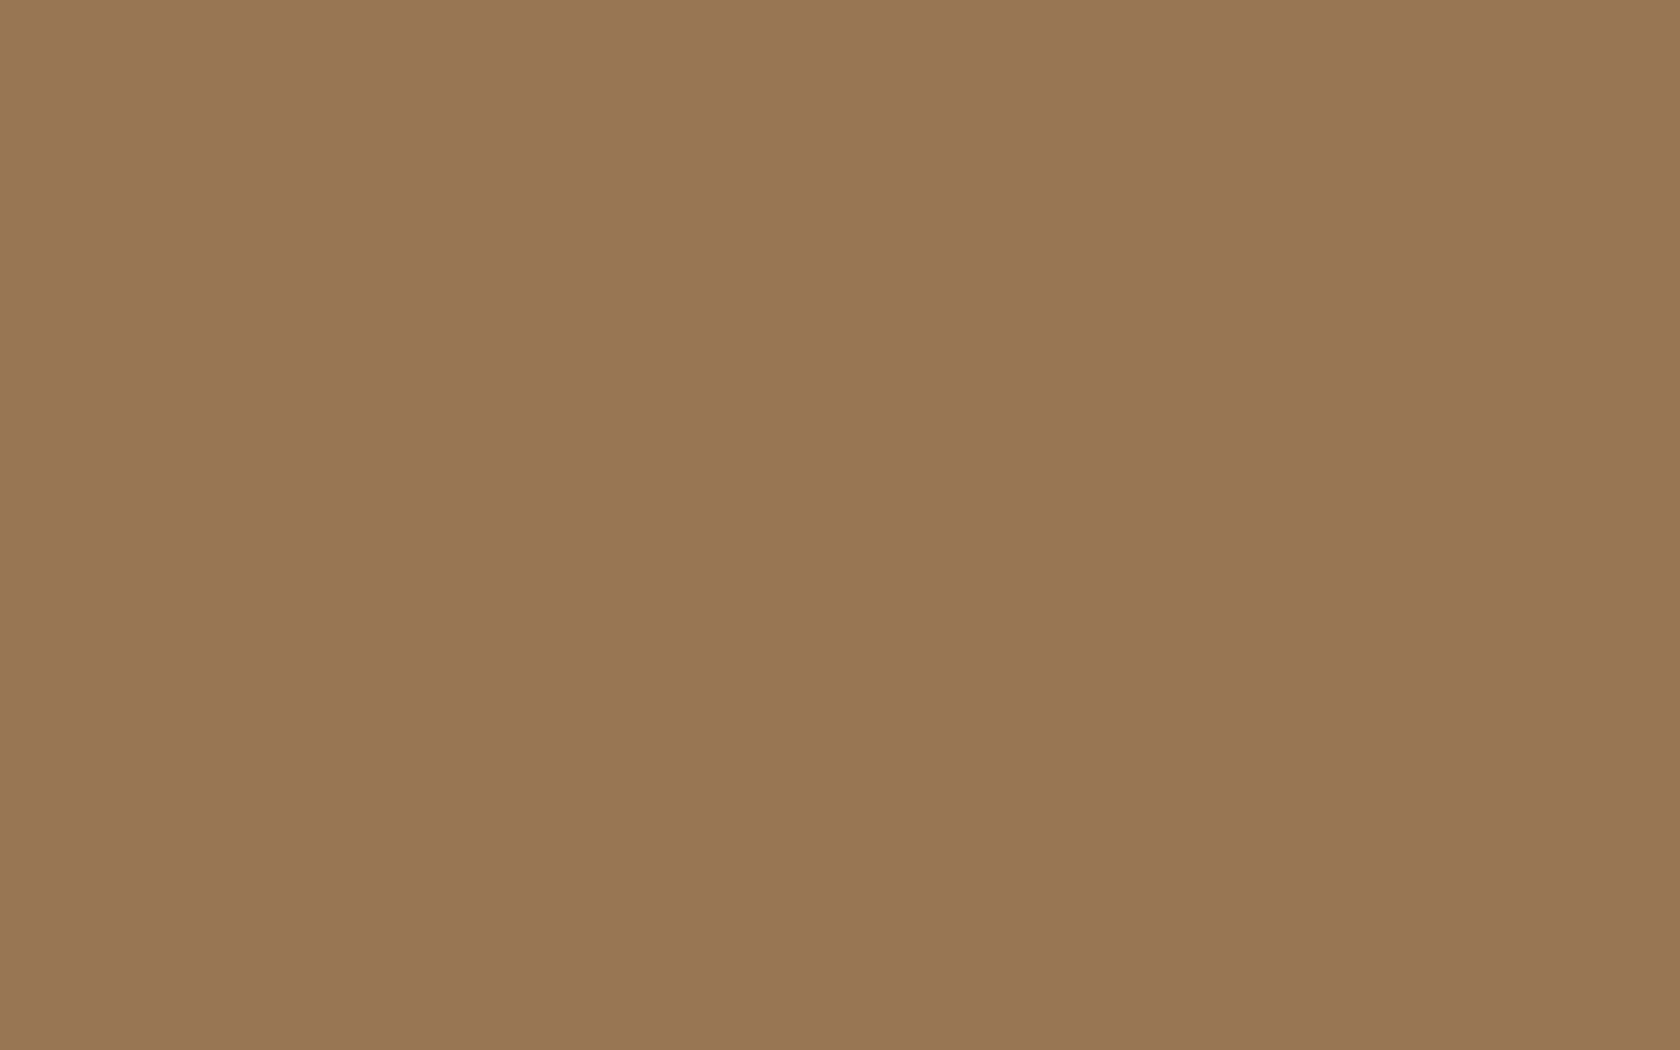 1680x1050 Pale Brown Solid Color Background